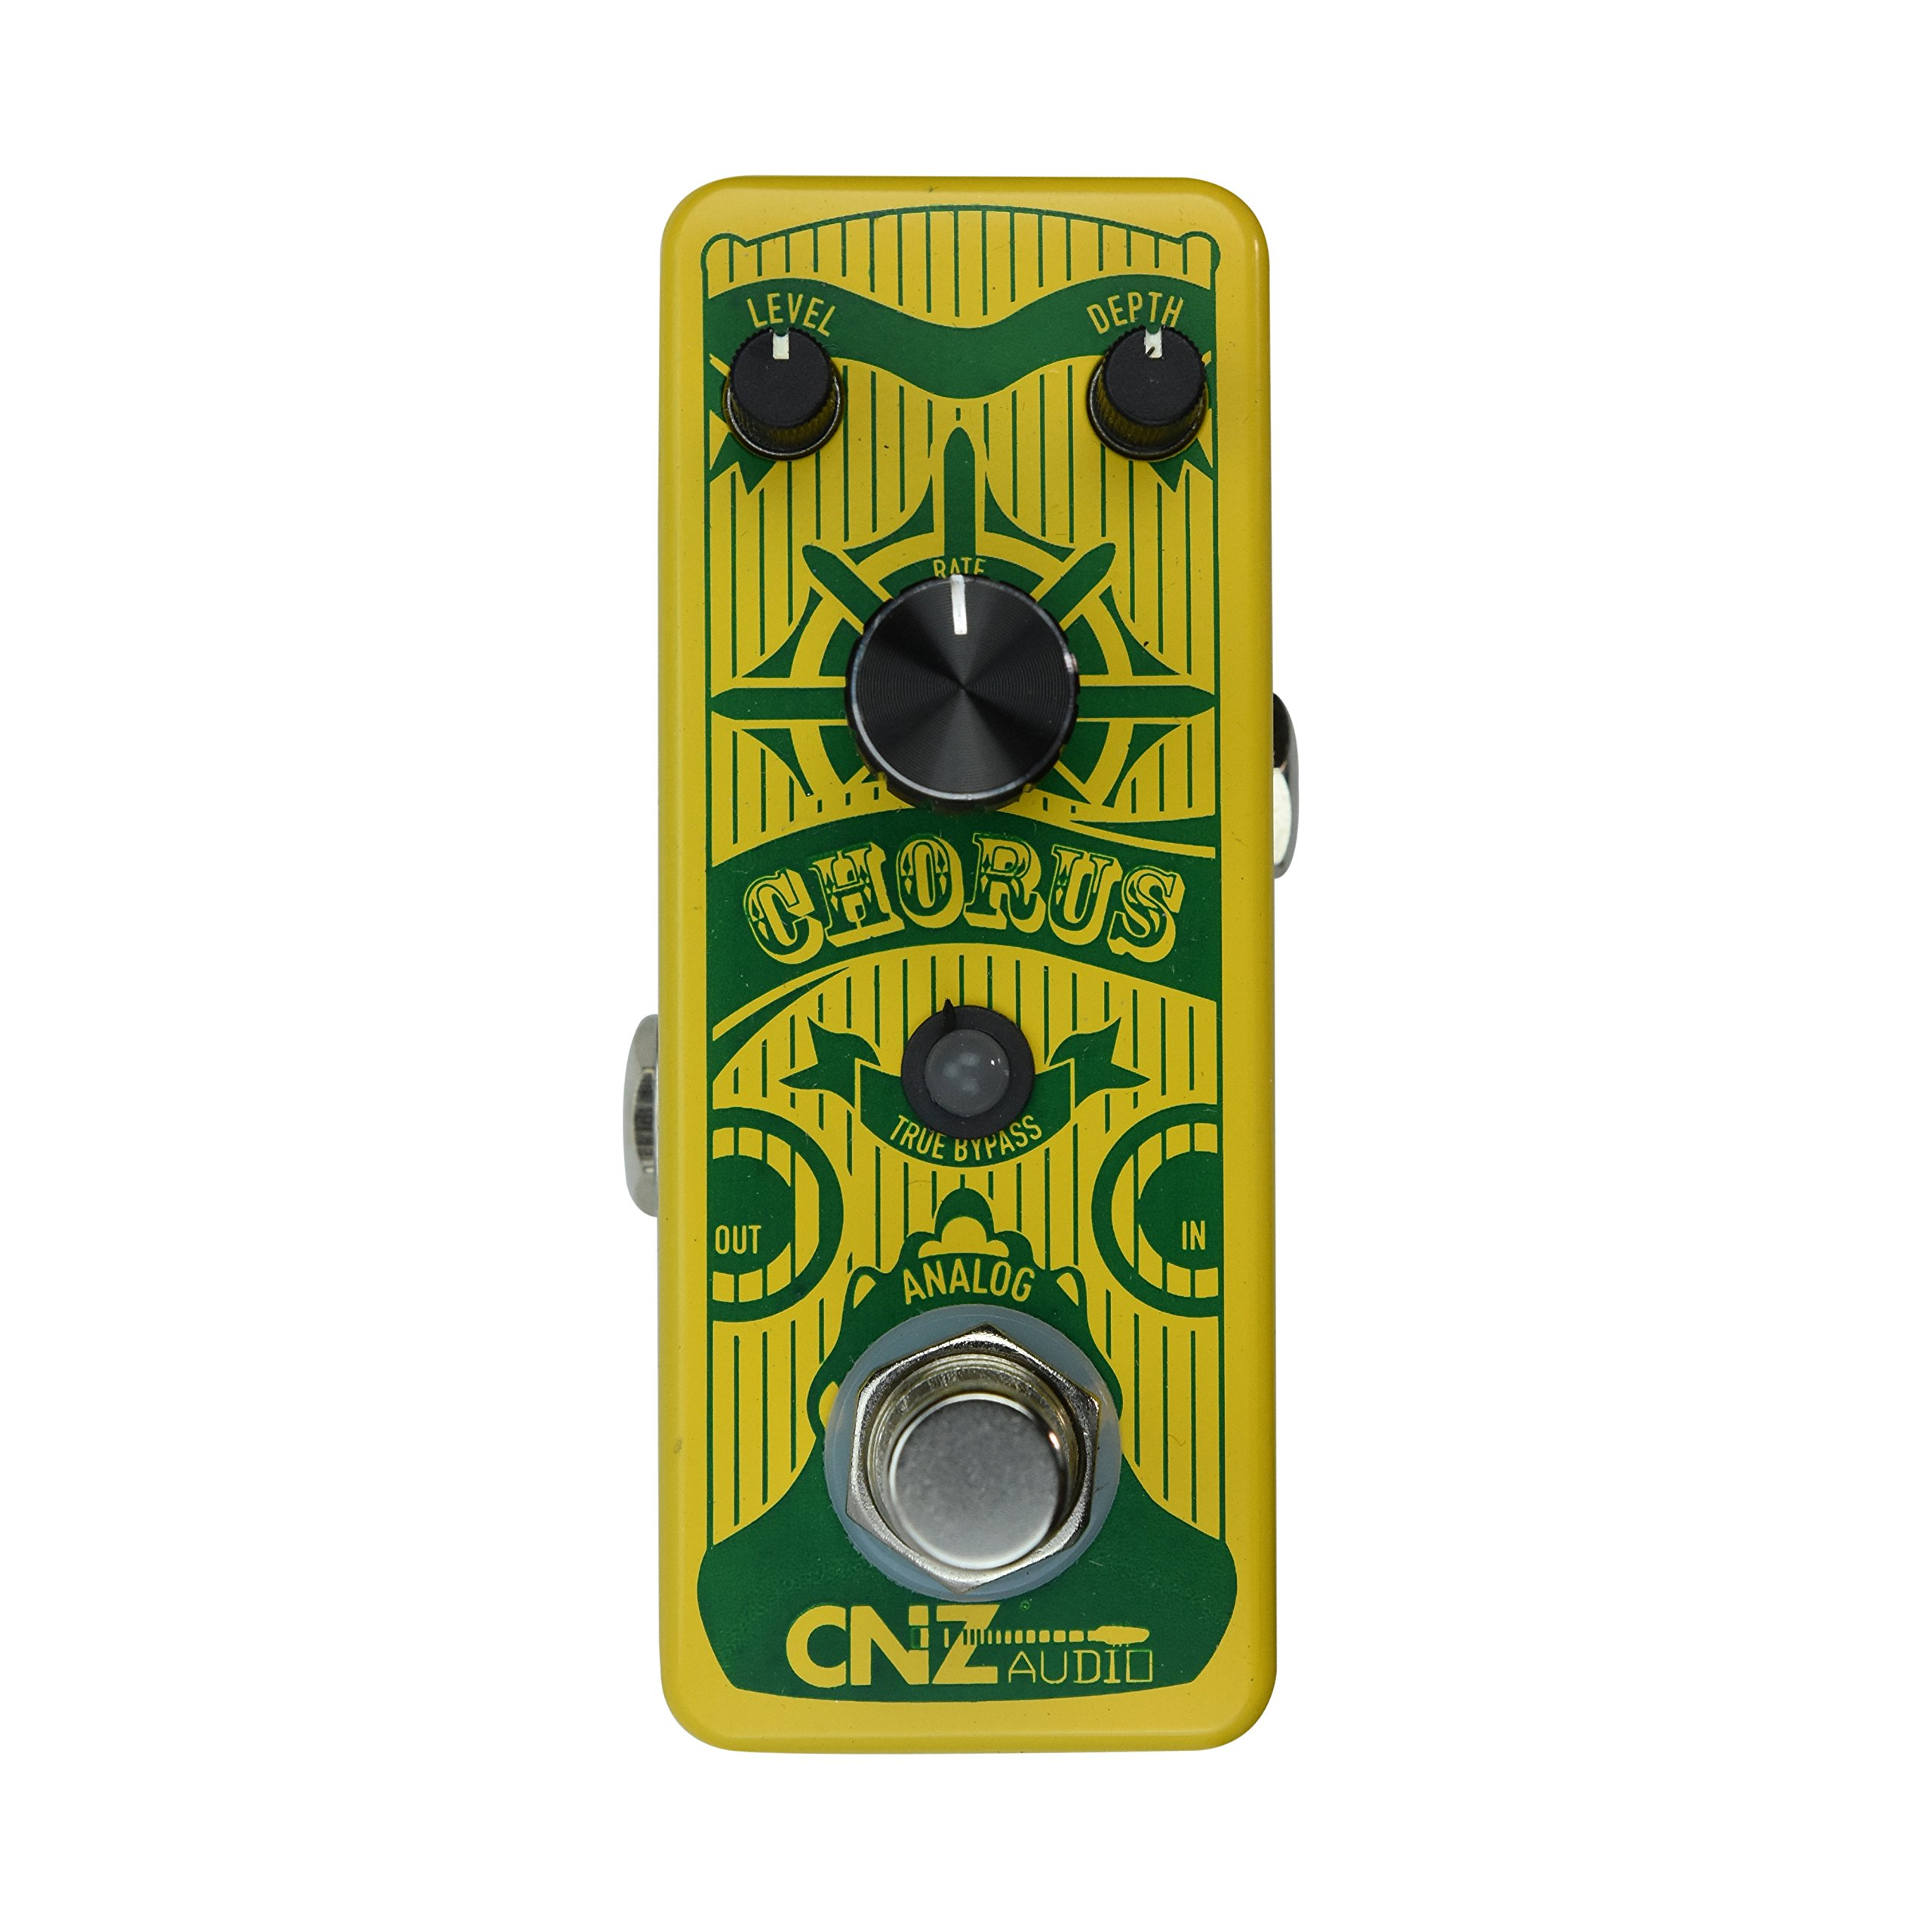 CNZ Audio Analog Chorus Guitar Effects Pedal, True Bypass by CNZ Audio